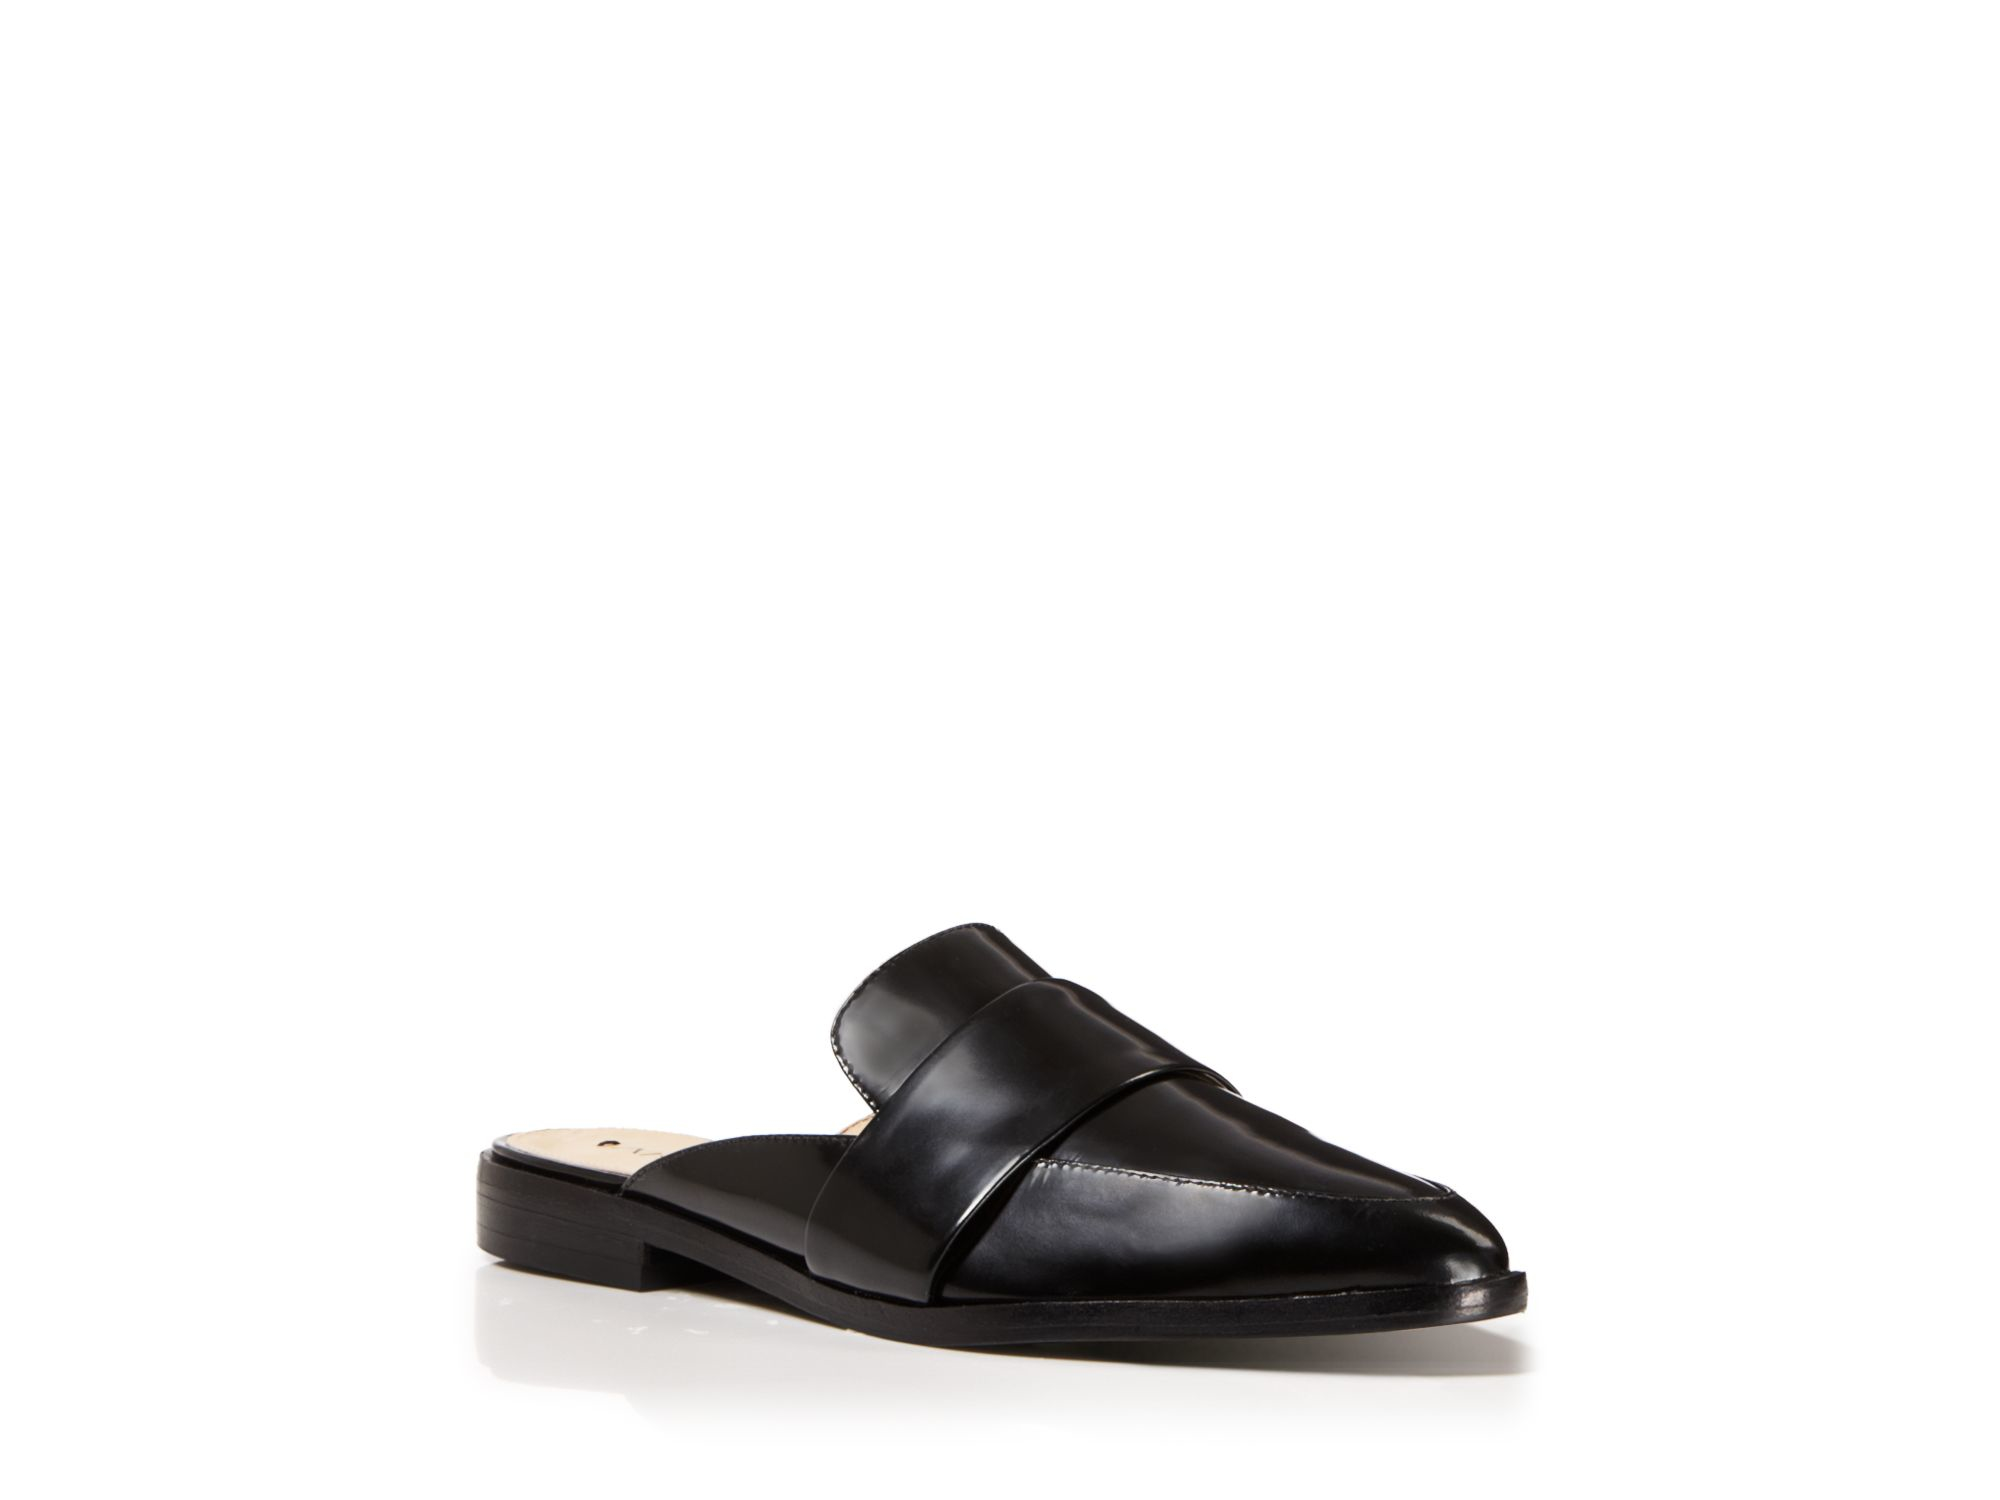 03db7b5f8d42 Lyst - Via Spiga Oxford Flats - Lauryn Slide in Black